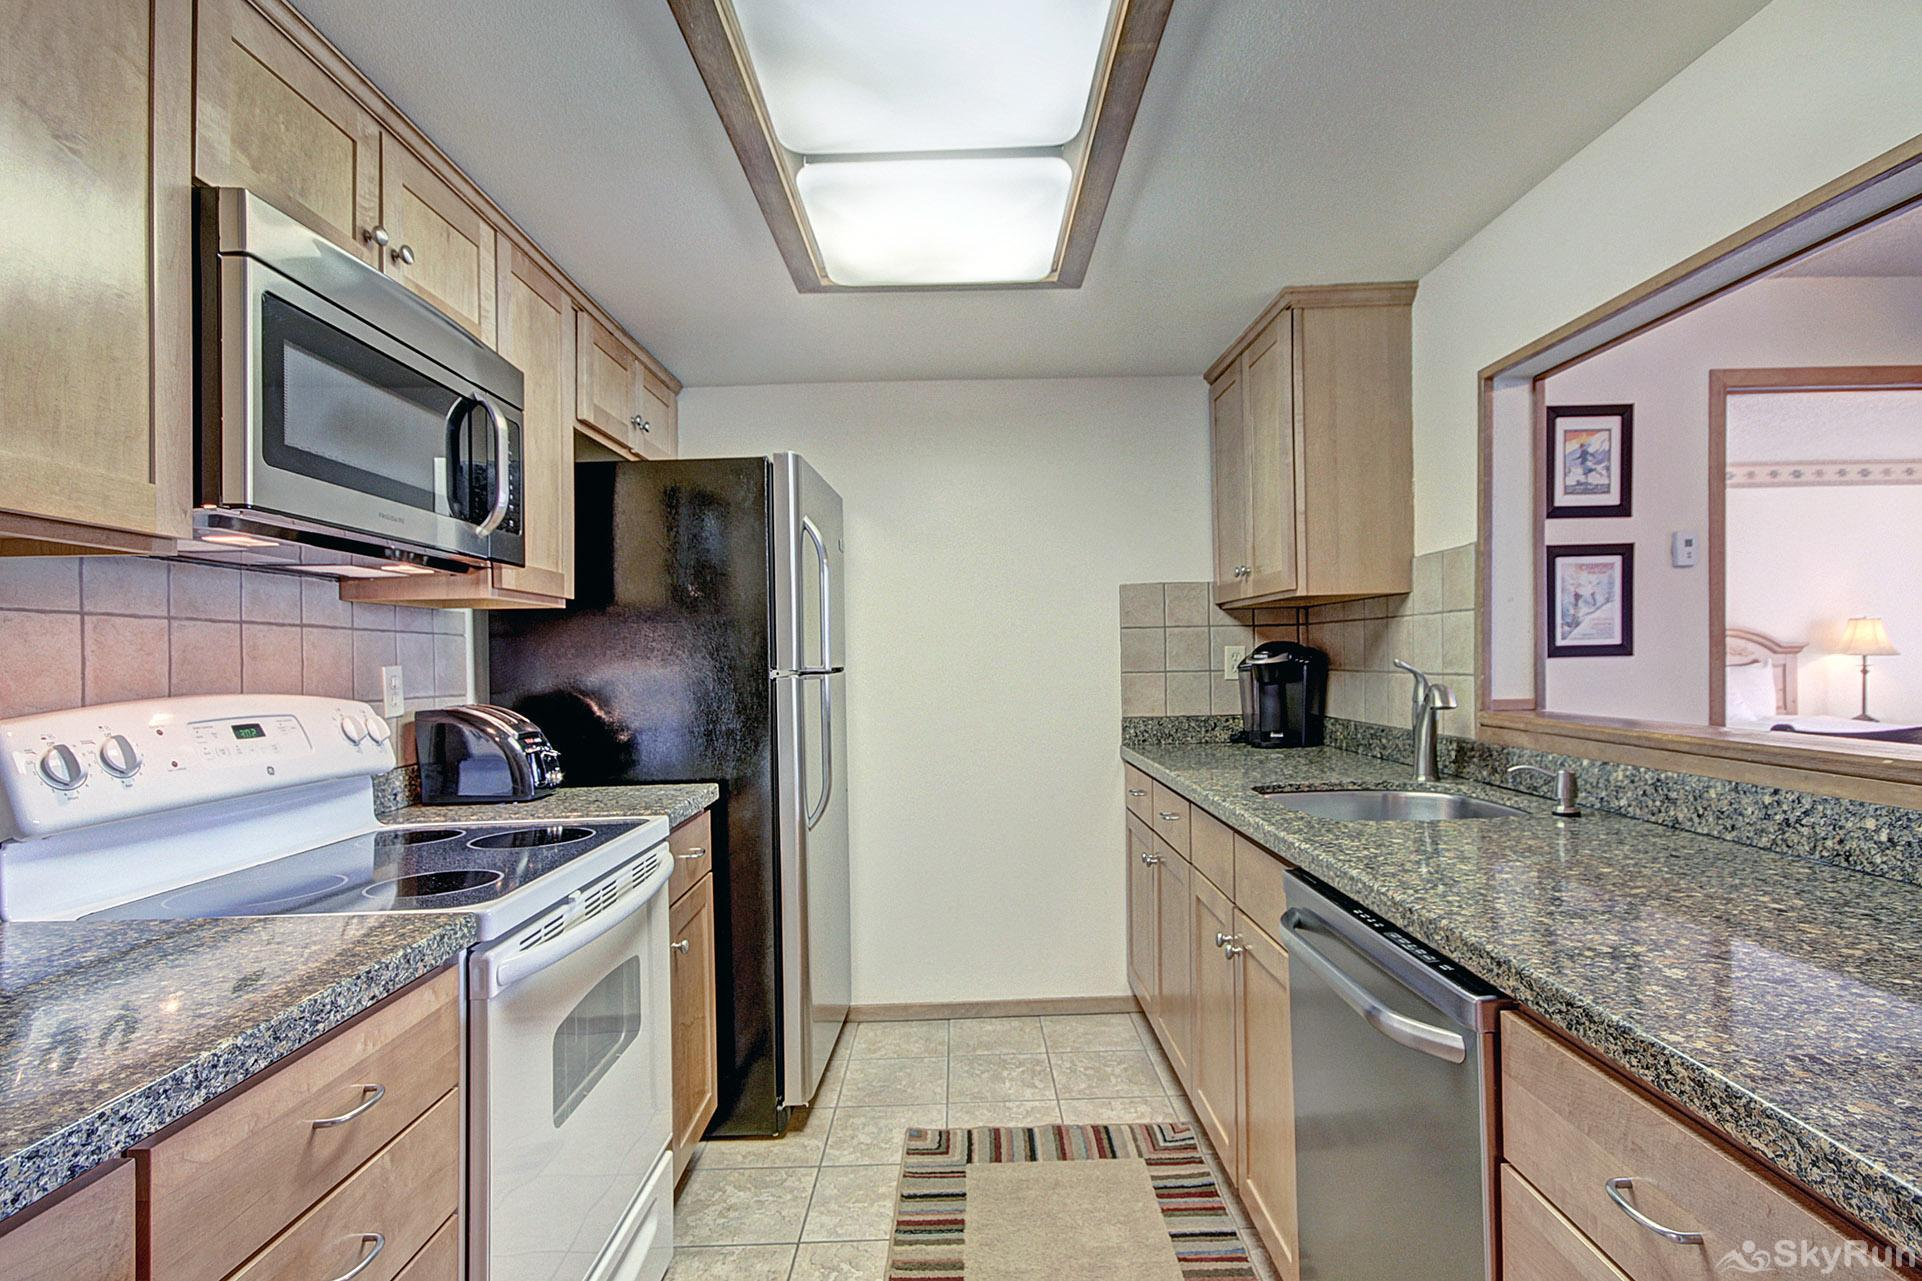 VS438 Village Square Fully Equipped Kitchen